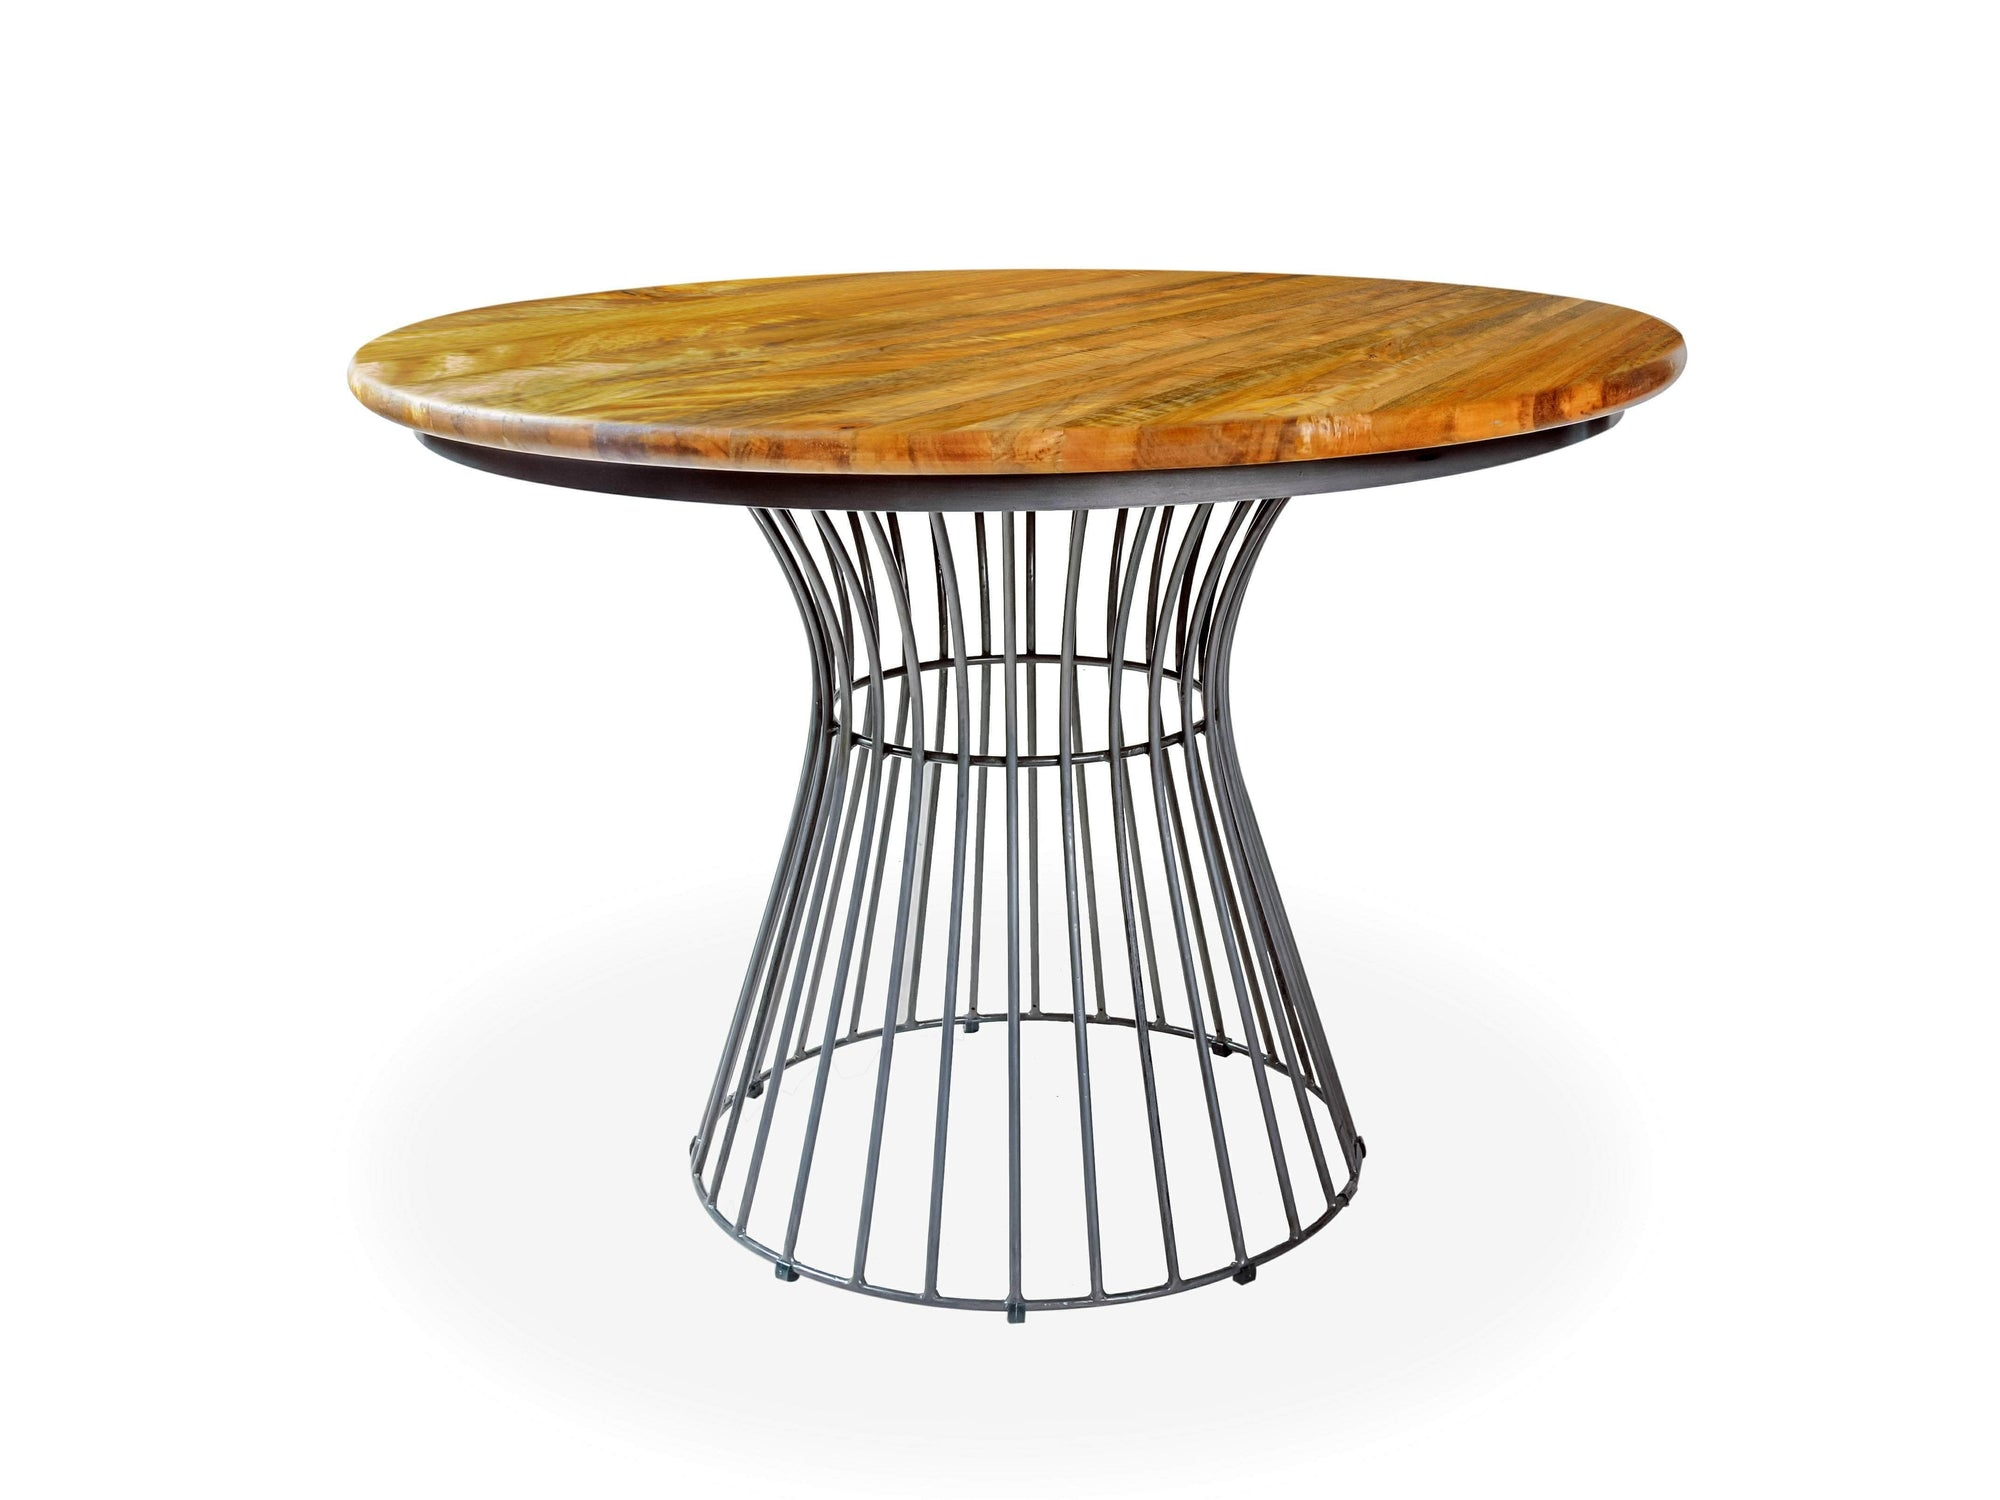 Round, cafe style bistro table with mango wood top and circular, steel base